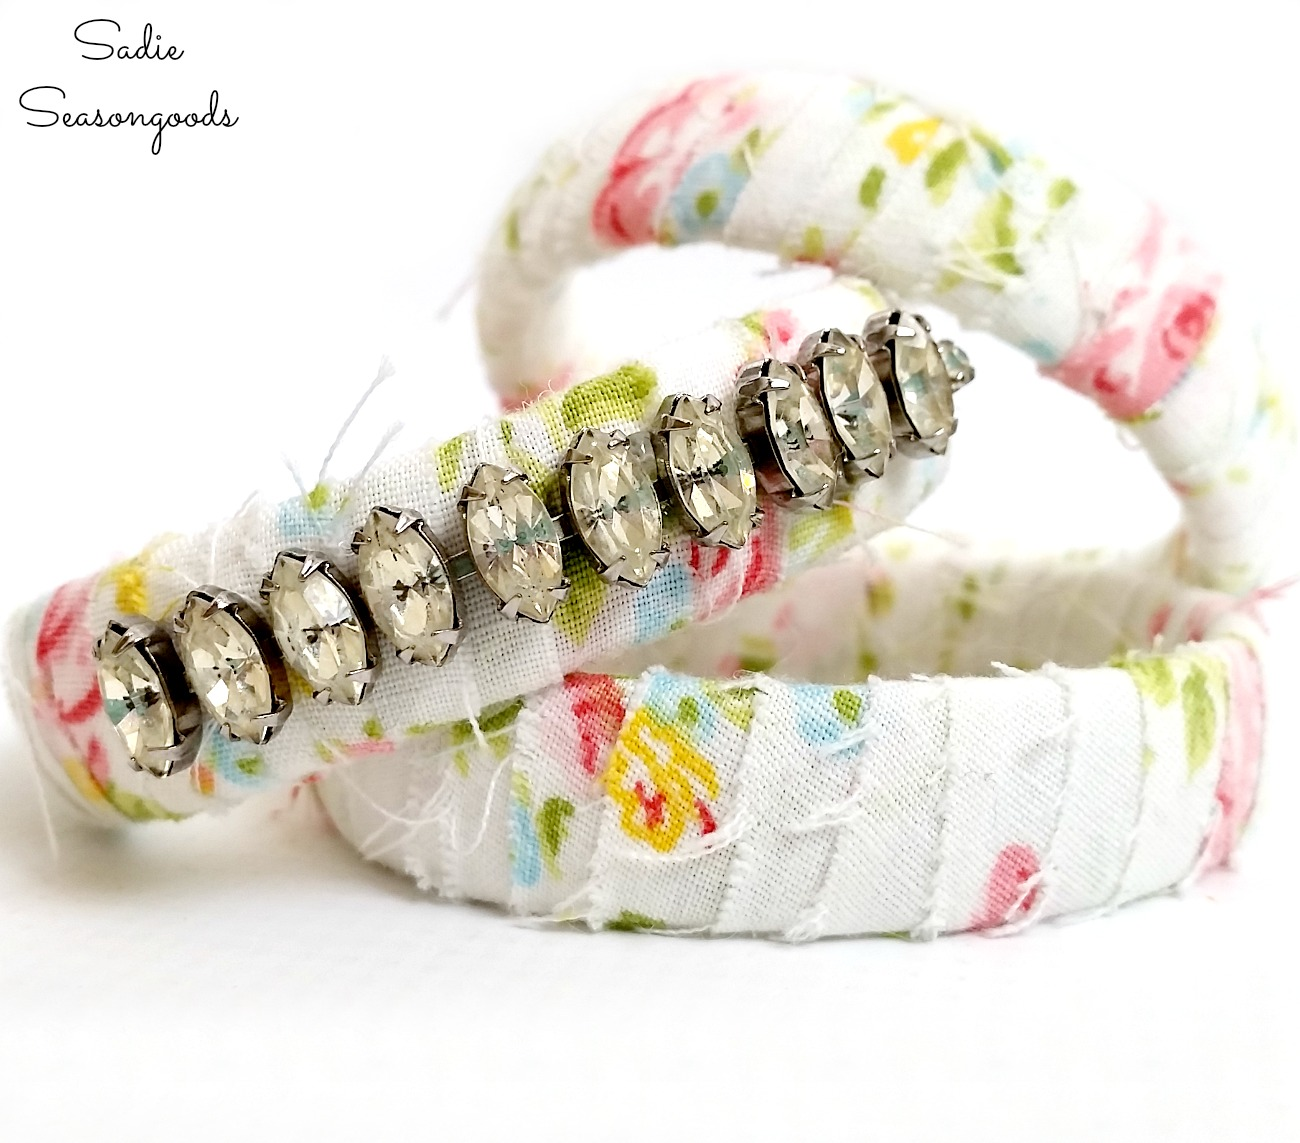 DIY Bracelets with Vintage Fabric and Broken Jewelry - How to upcycle old and broken jewelry. #DIY #crafts #boho Making things with old jewelry,  broken jewelry crafts, diy boho, diy bohemian jewelry,  craft ideas with jewelry,  art made from old jewelry,  how to make vintage jewelry,  how to make vintage jewelry art,  items made from old jewelry,  how to update old jewelry